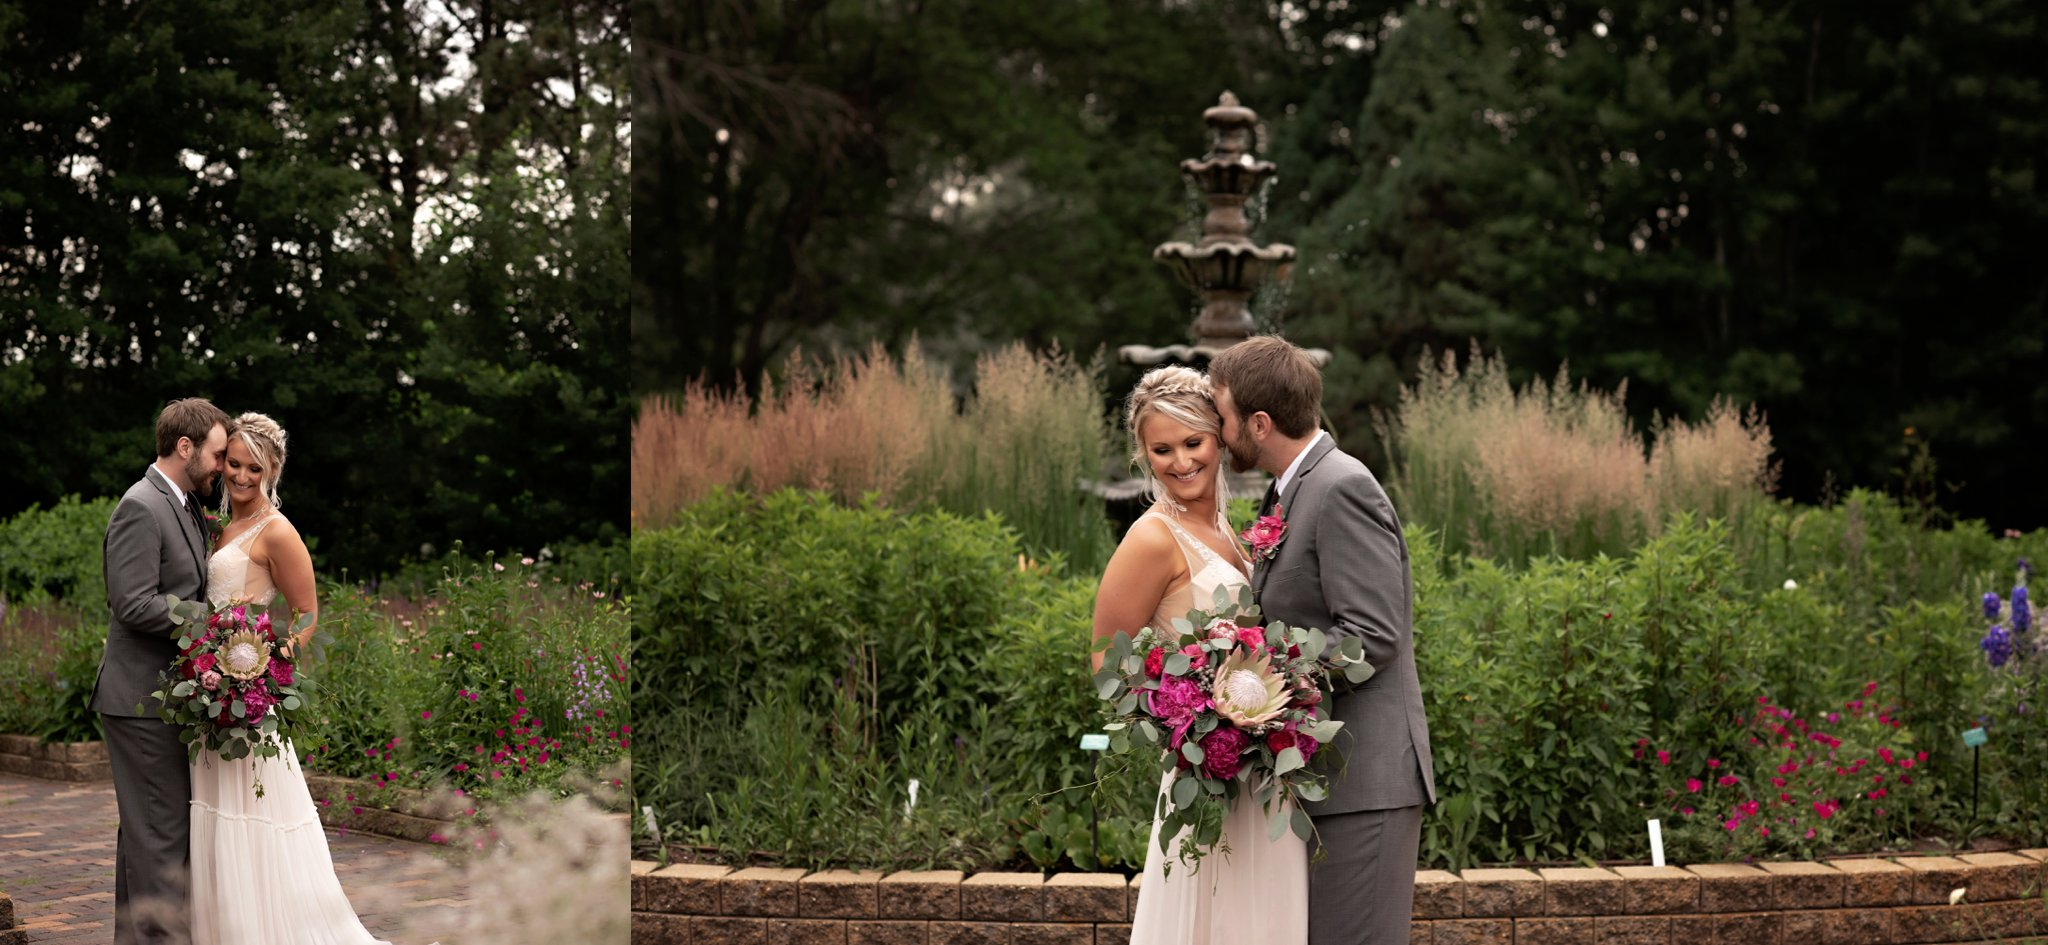 wedding portraits at mccrory gardens